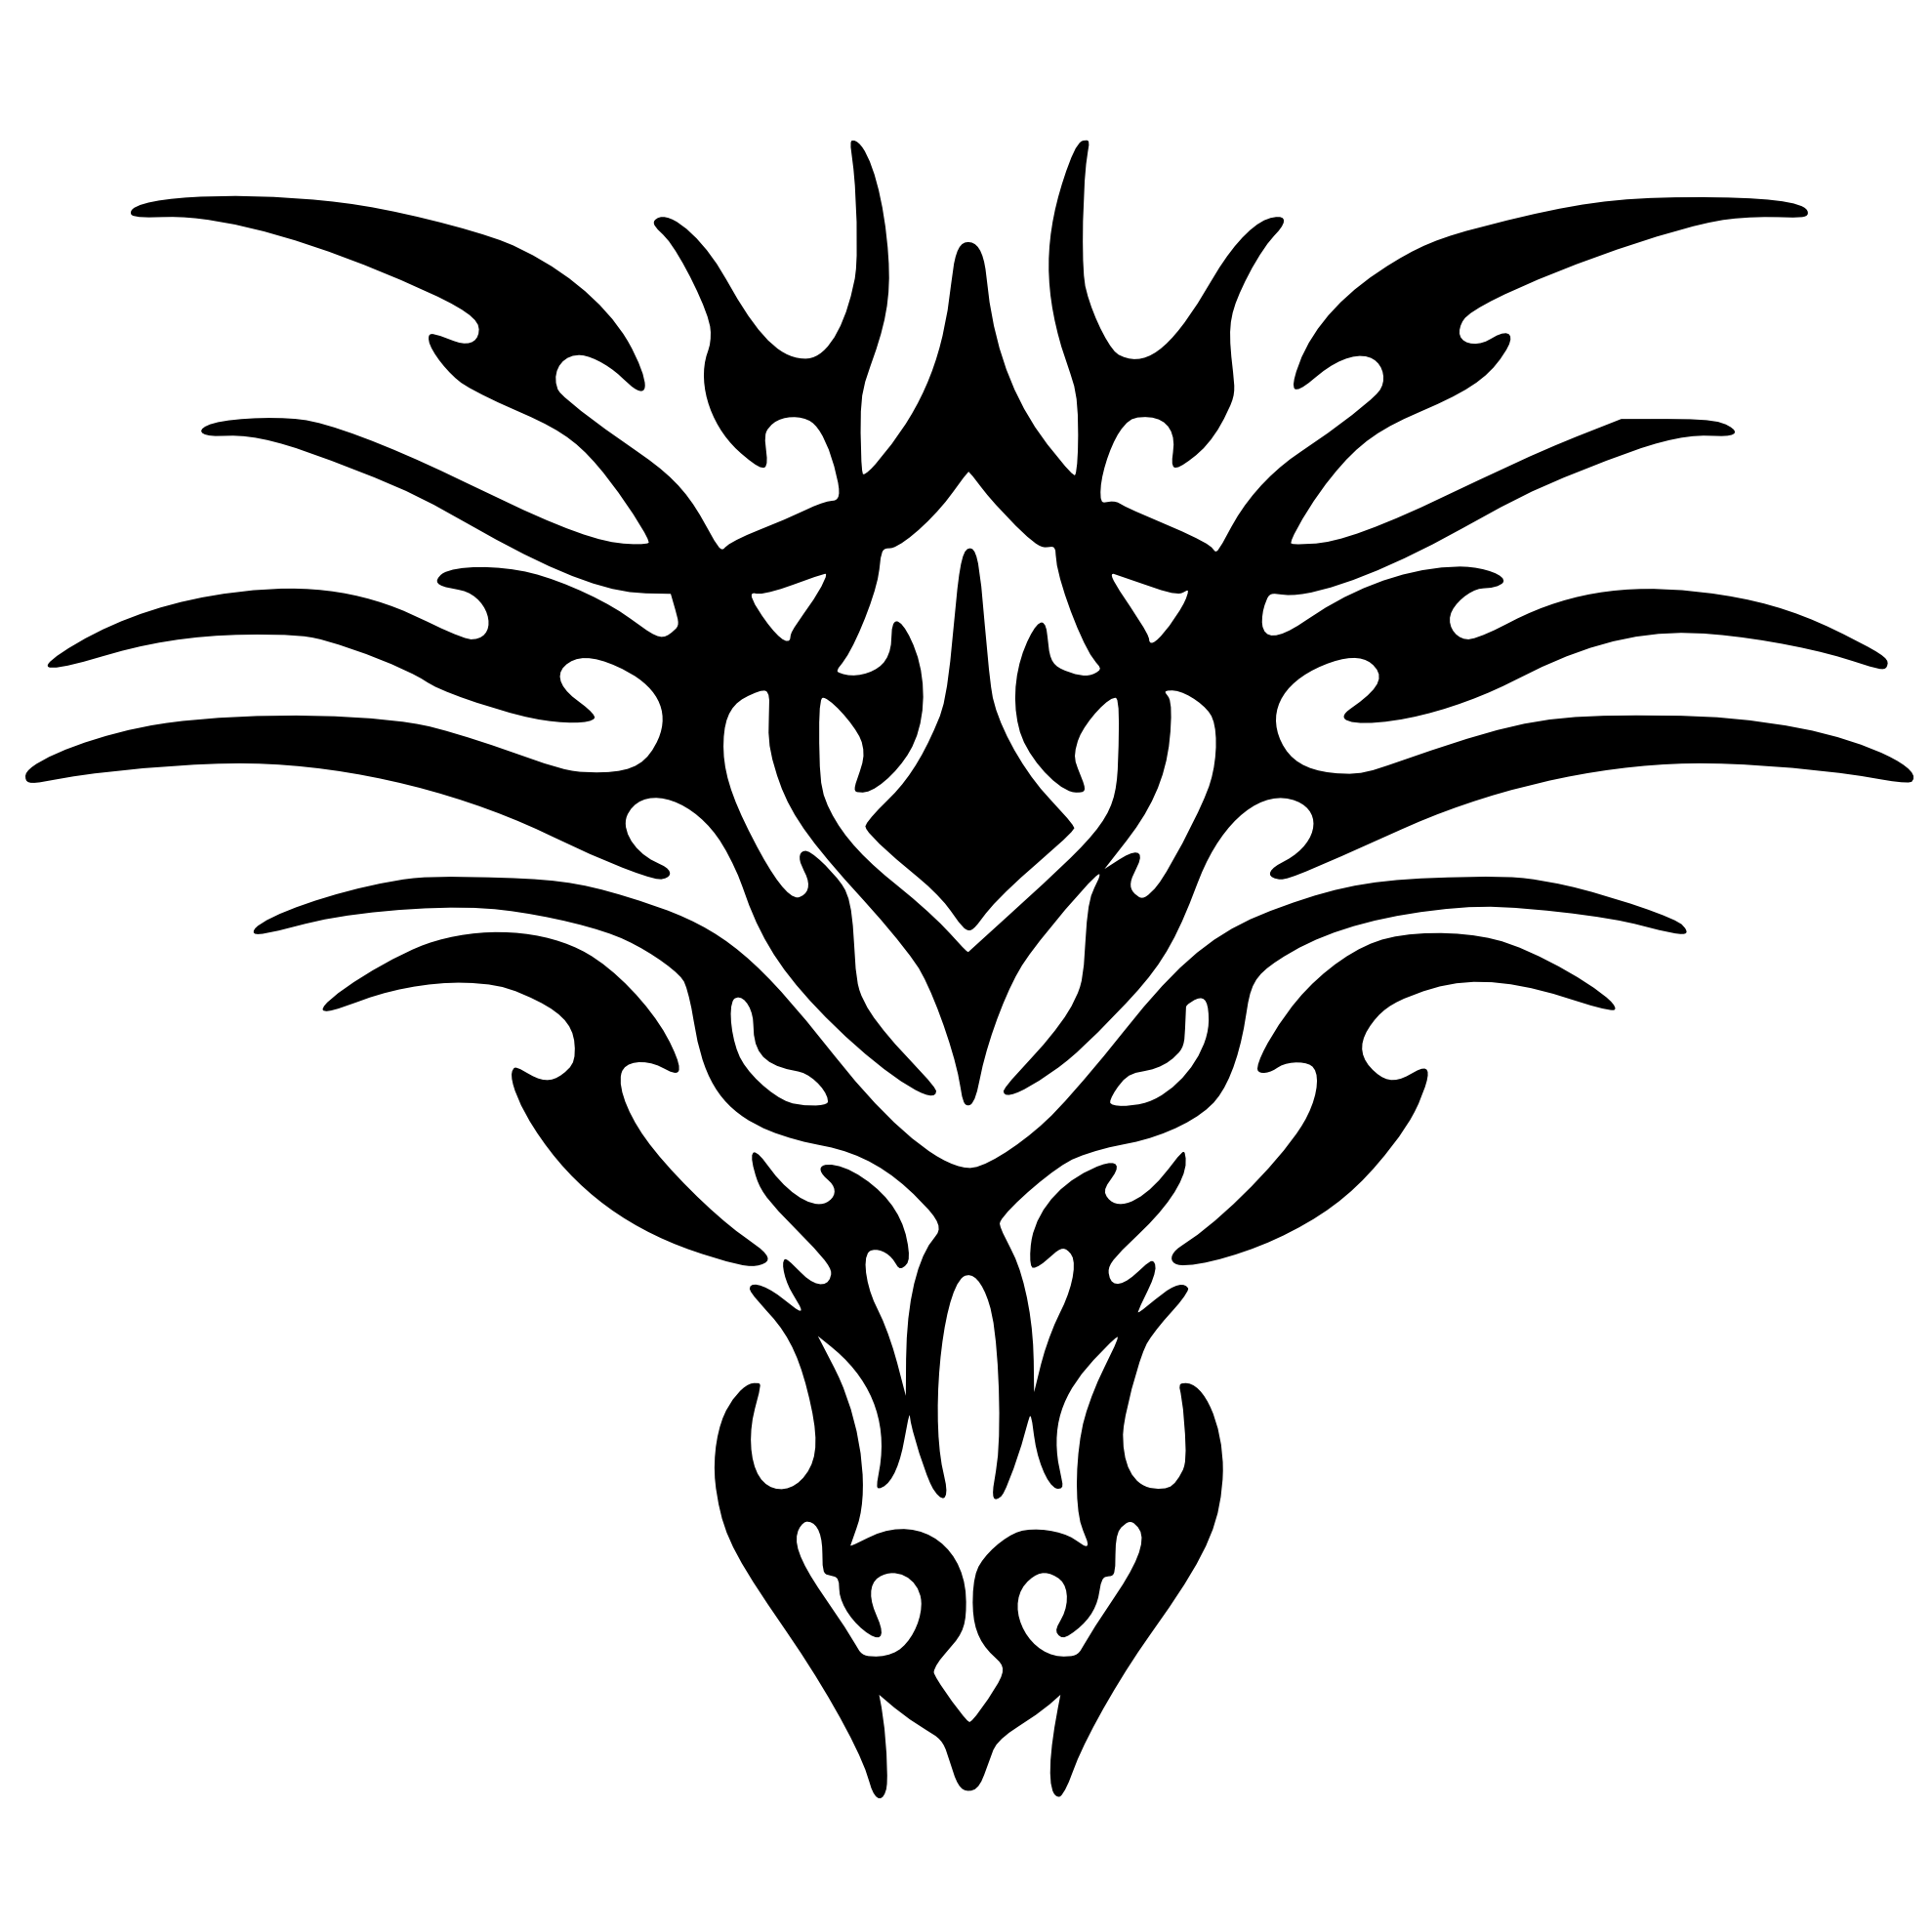 . PlusPng.com Dragon Tattoo Transparent 9 PNG991.png PlusPng.com  - Dragon Tattoos PNG